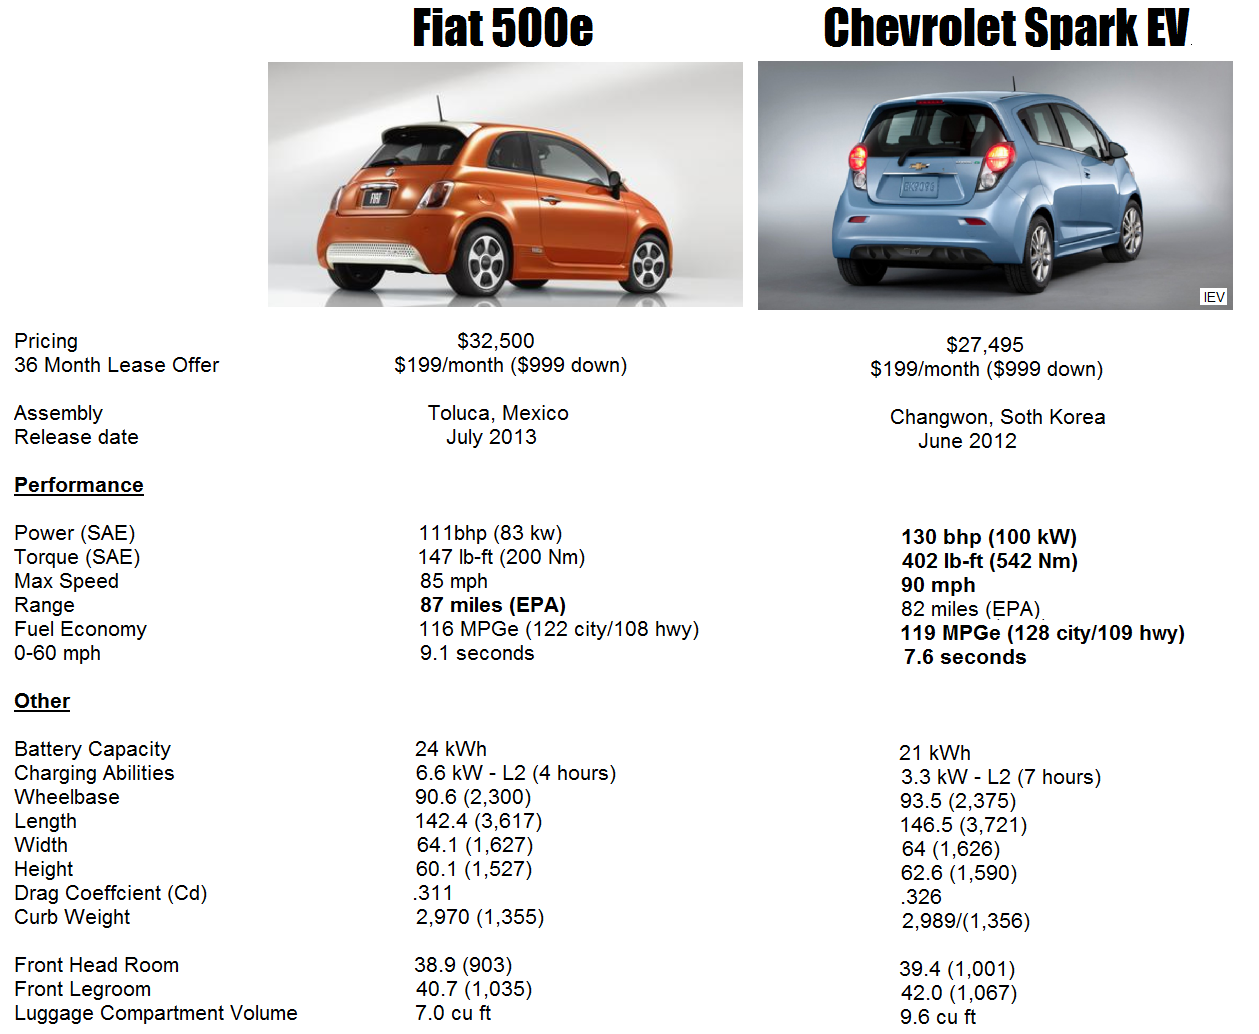 Valley Chevy - Fiat 500e vs Chevrolet Spark EV (Side-by-Side)